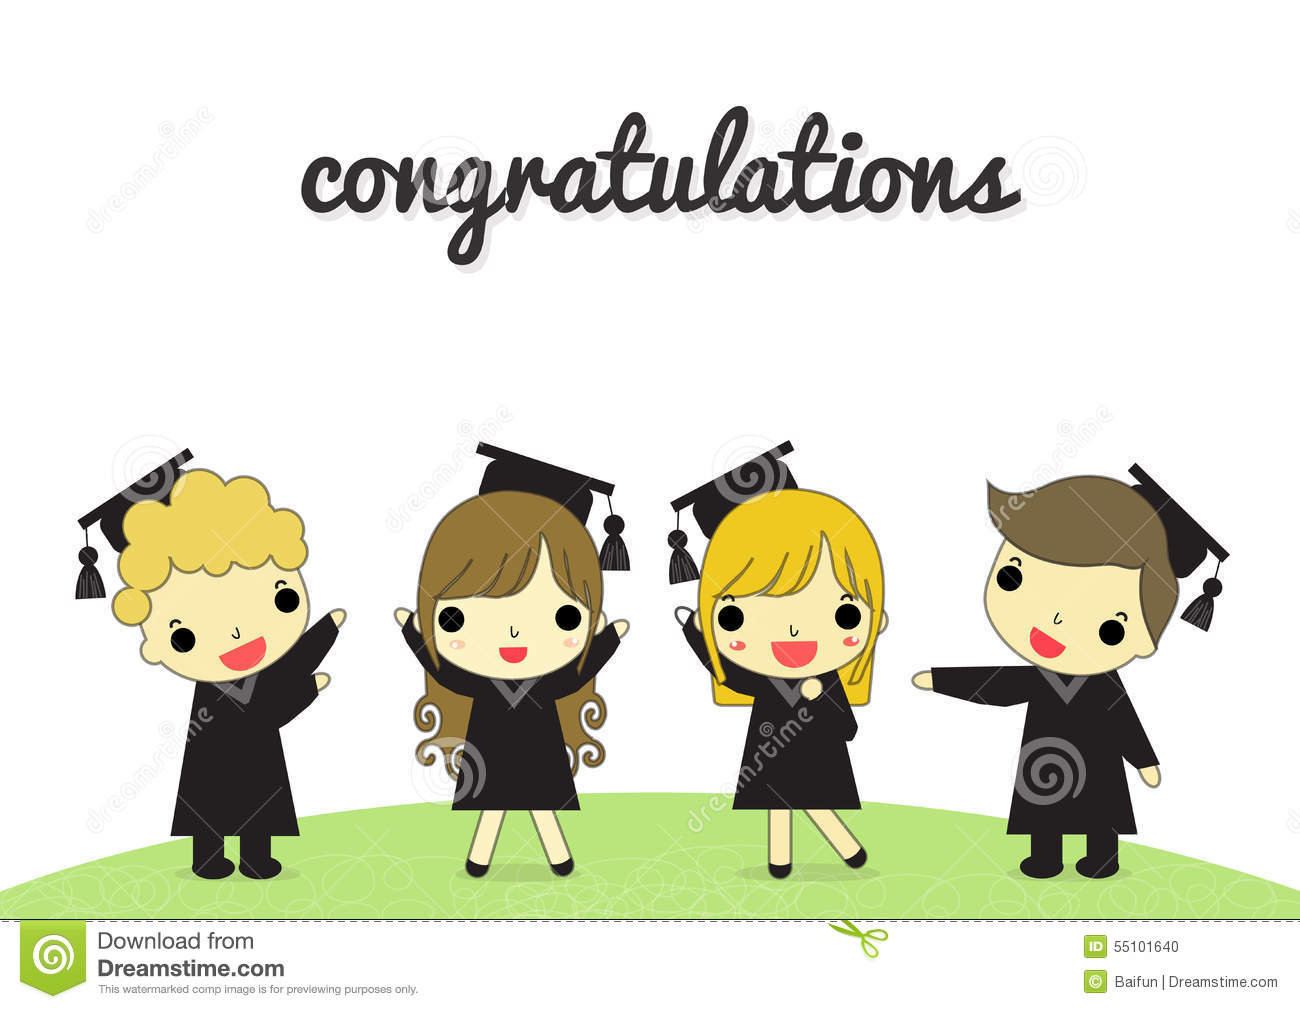 More similar stock images of ` Graduate and congratulation isolate `